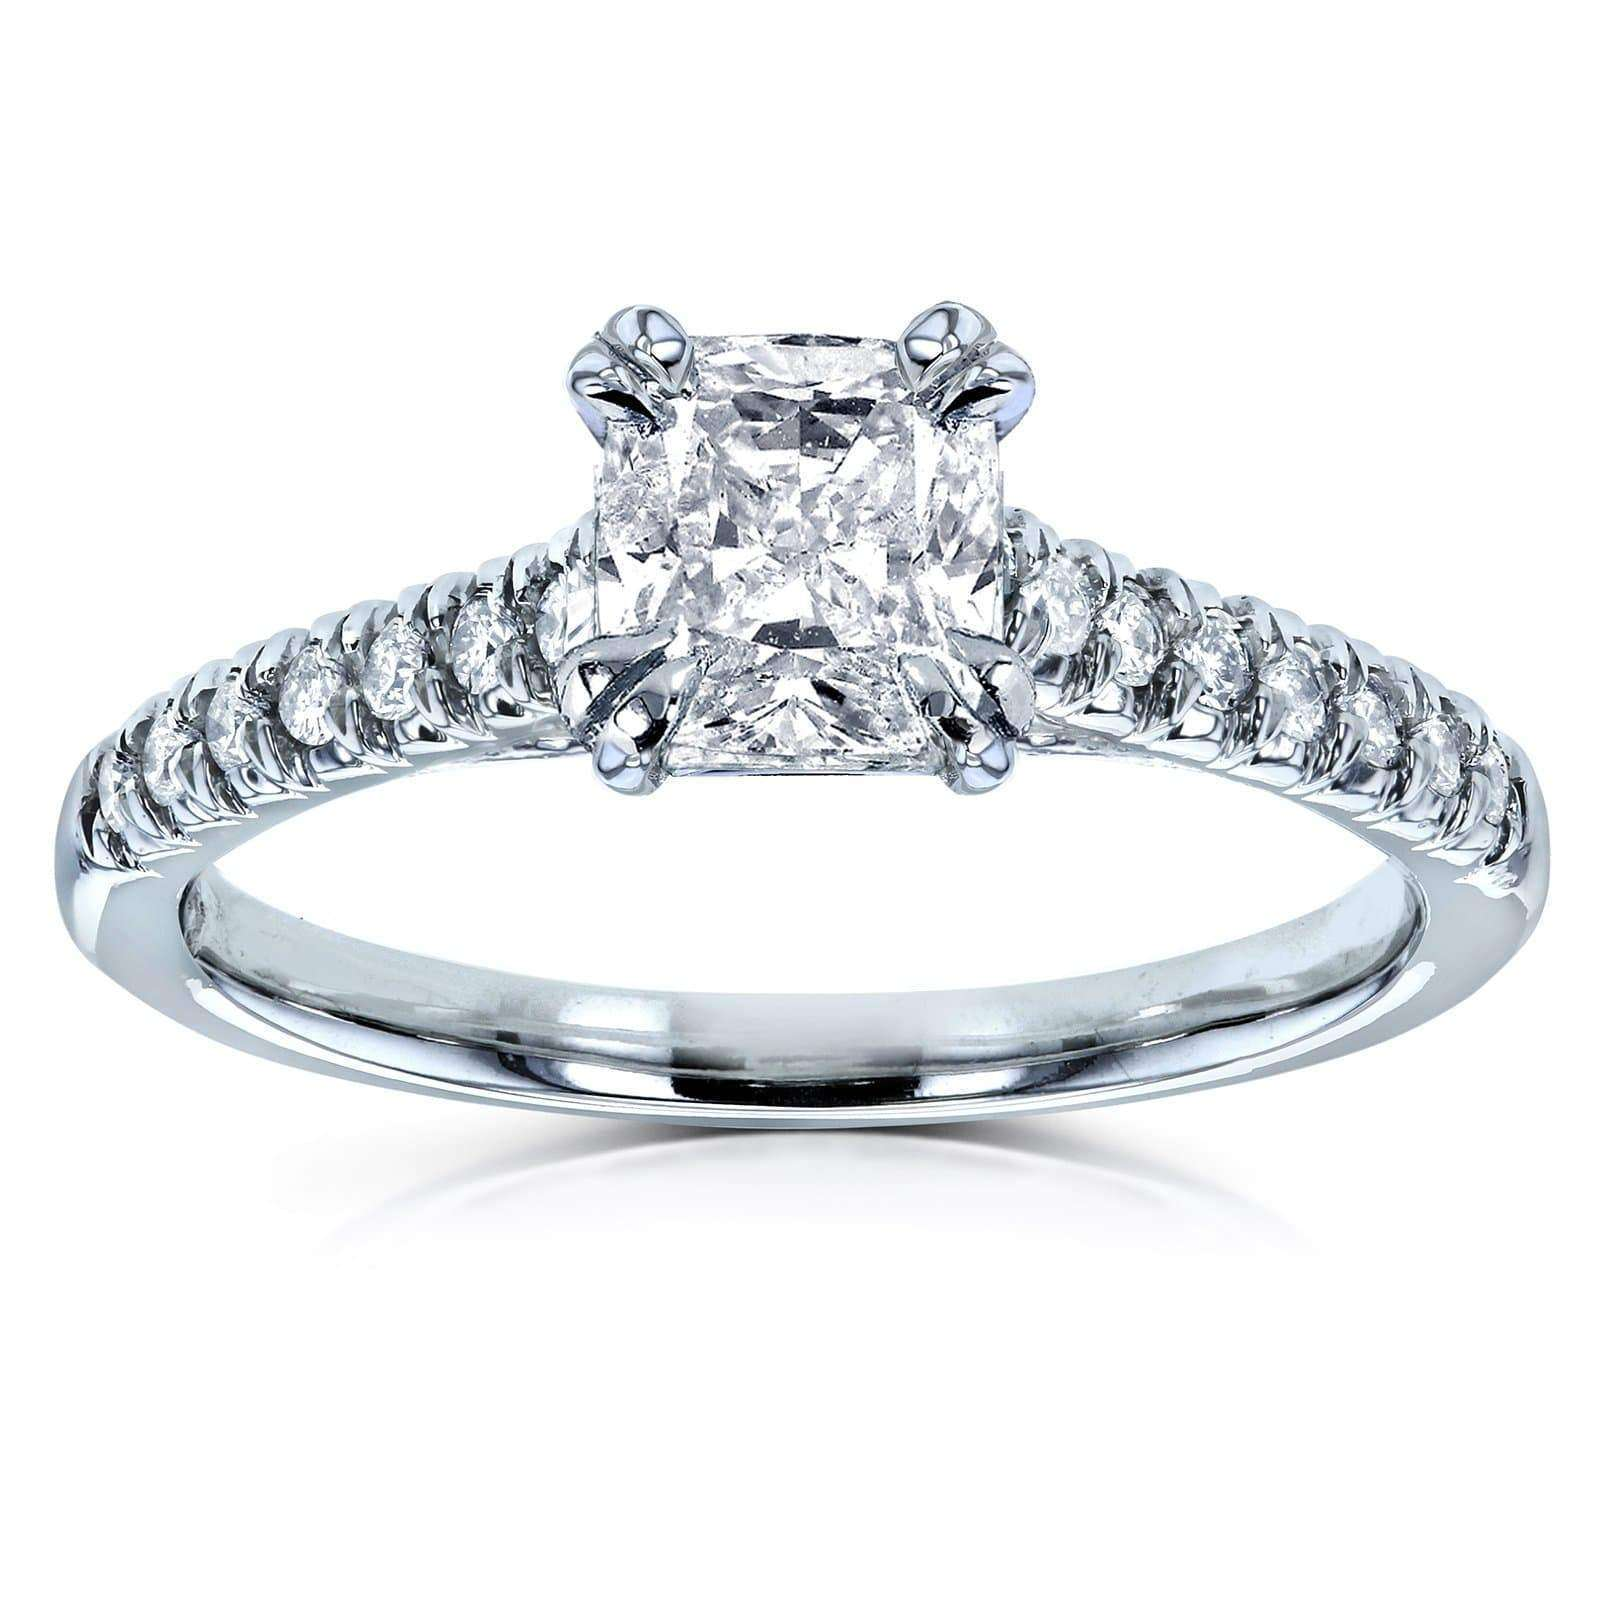 Cushion Cut 1ct Diamond Solitaire Center French Pave